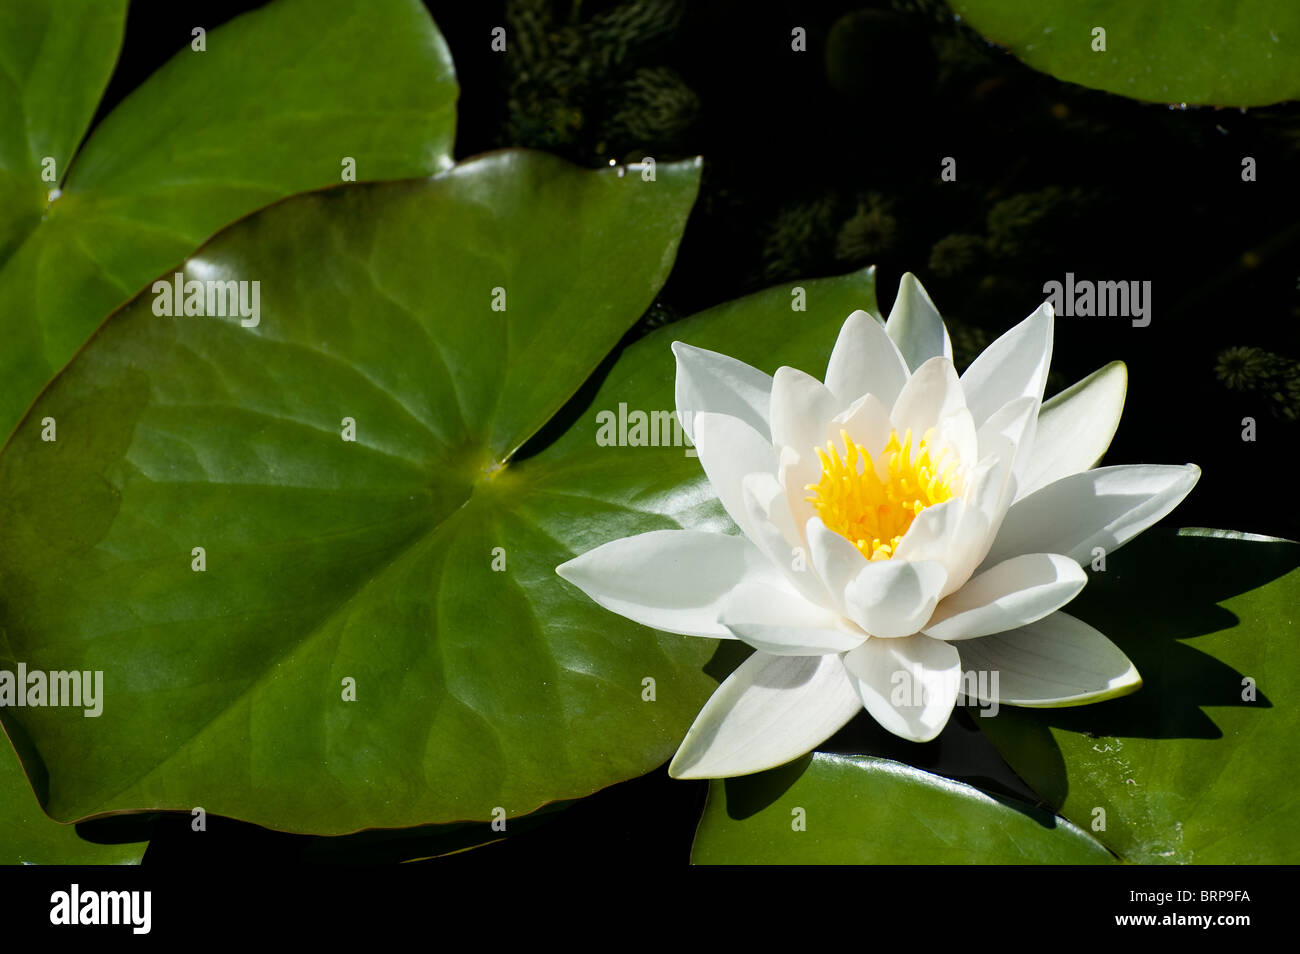 Pretty White Water Lily Flowers Amongst Lily Pads In A Pond Stock